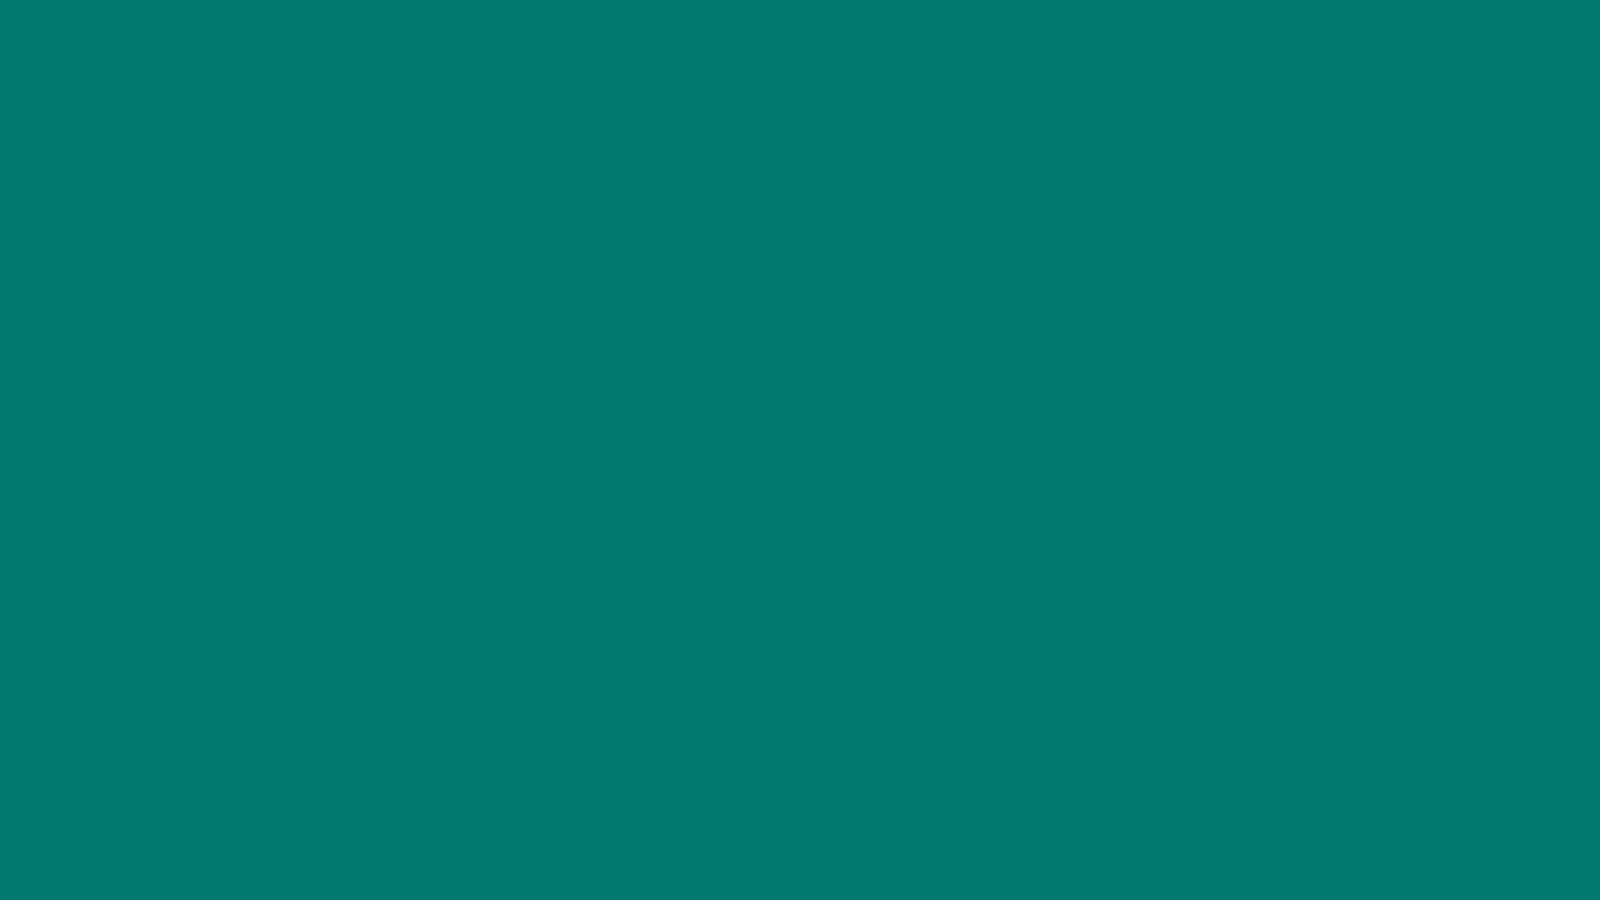 1600x900 Pine Green Solid Color Background